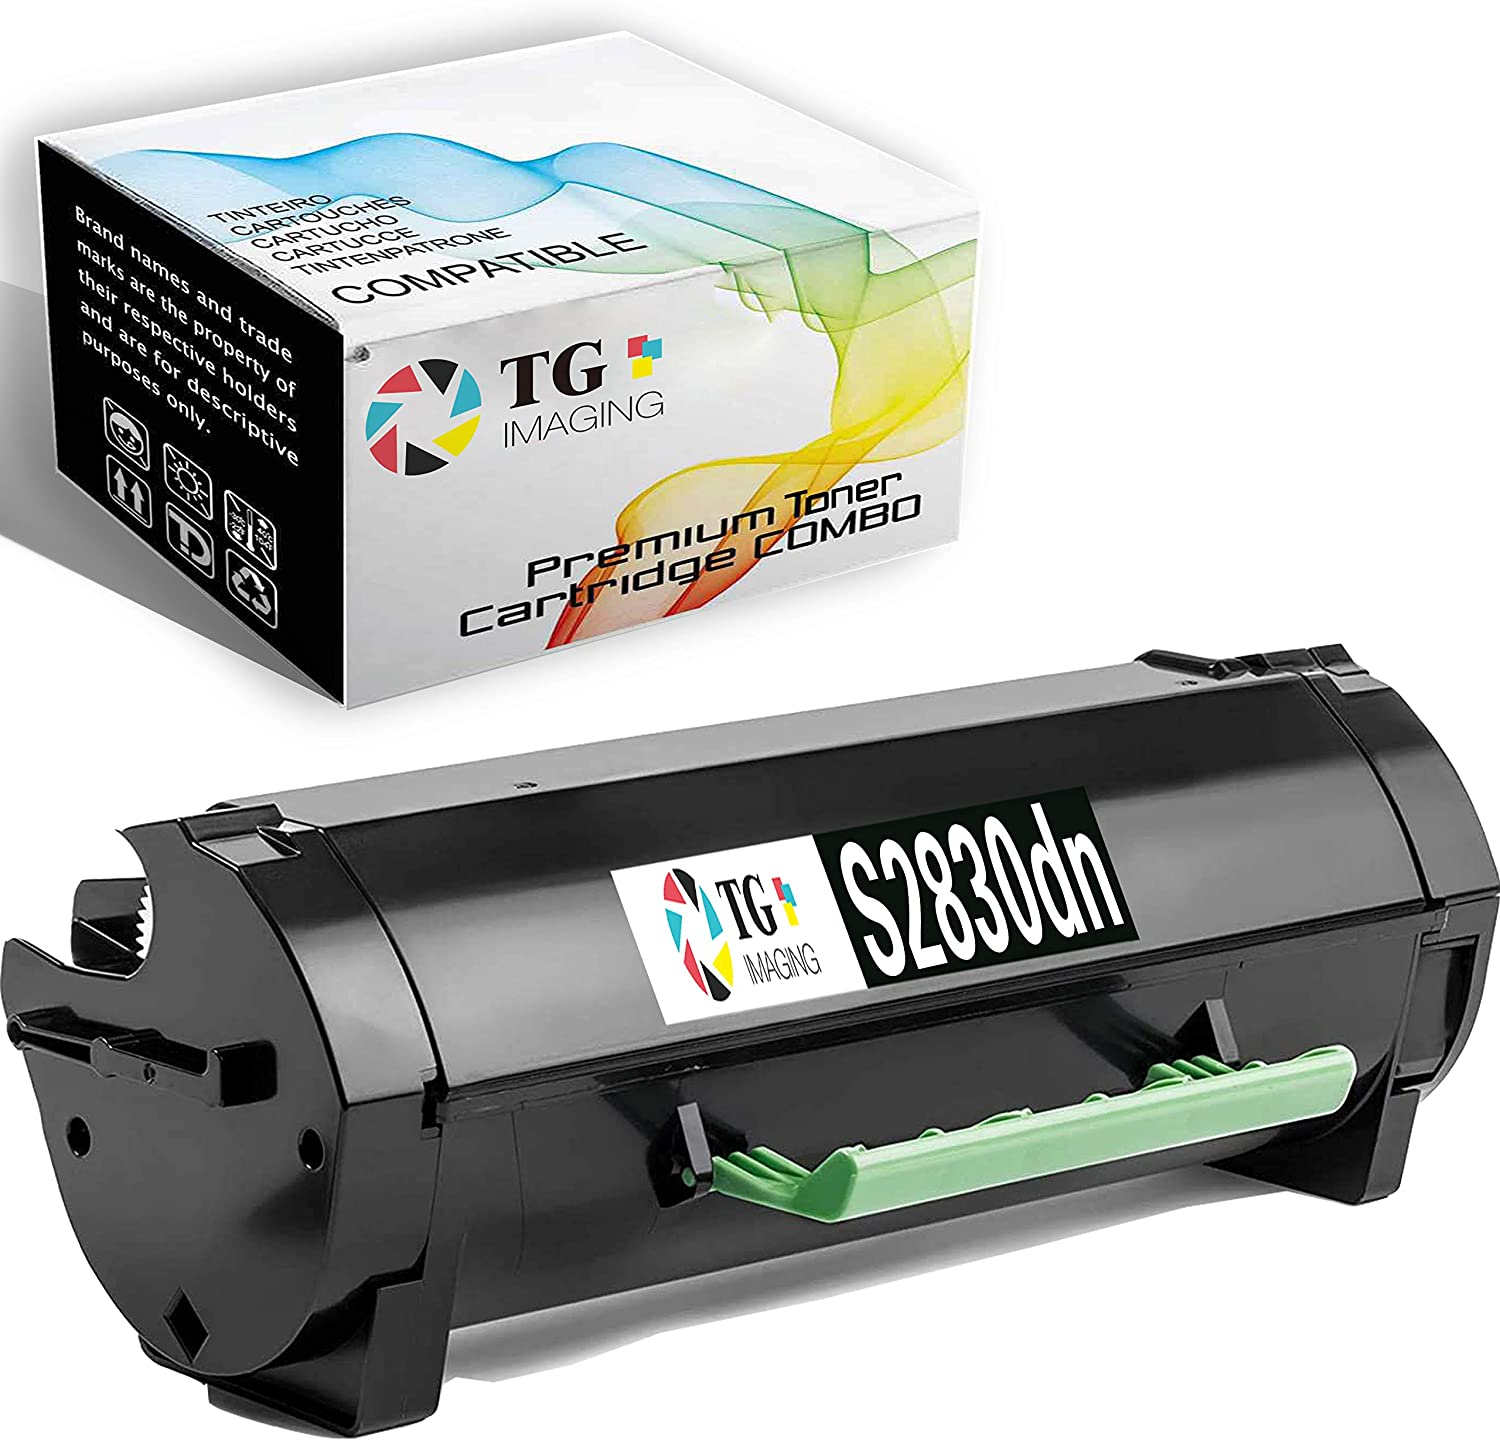 TG Imaging Compatible Toner Cartridge Replacement for Dell S2830 S2830X Worked in S2830dn Laser Printer (593-BBYO, 1 Pack Black)